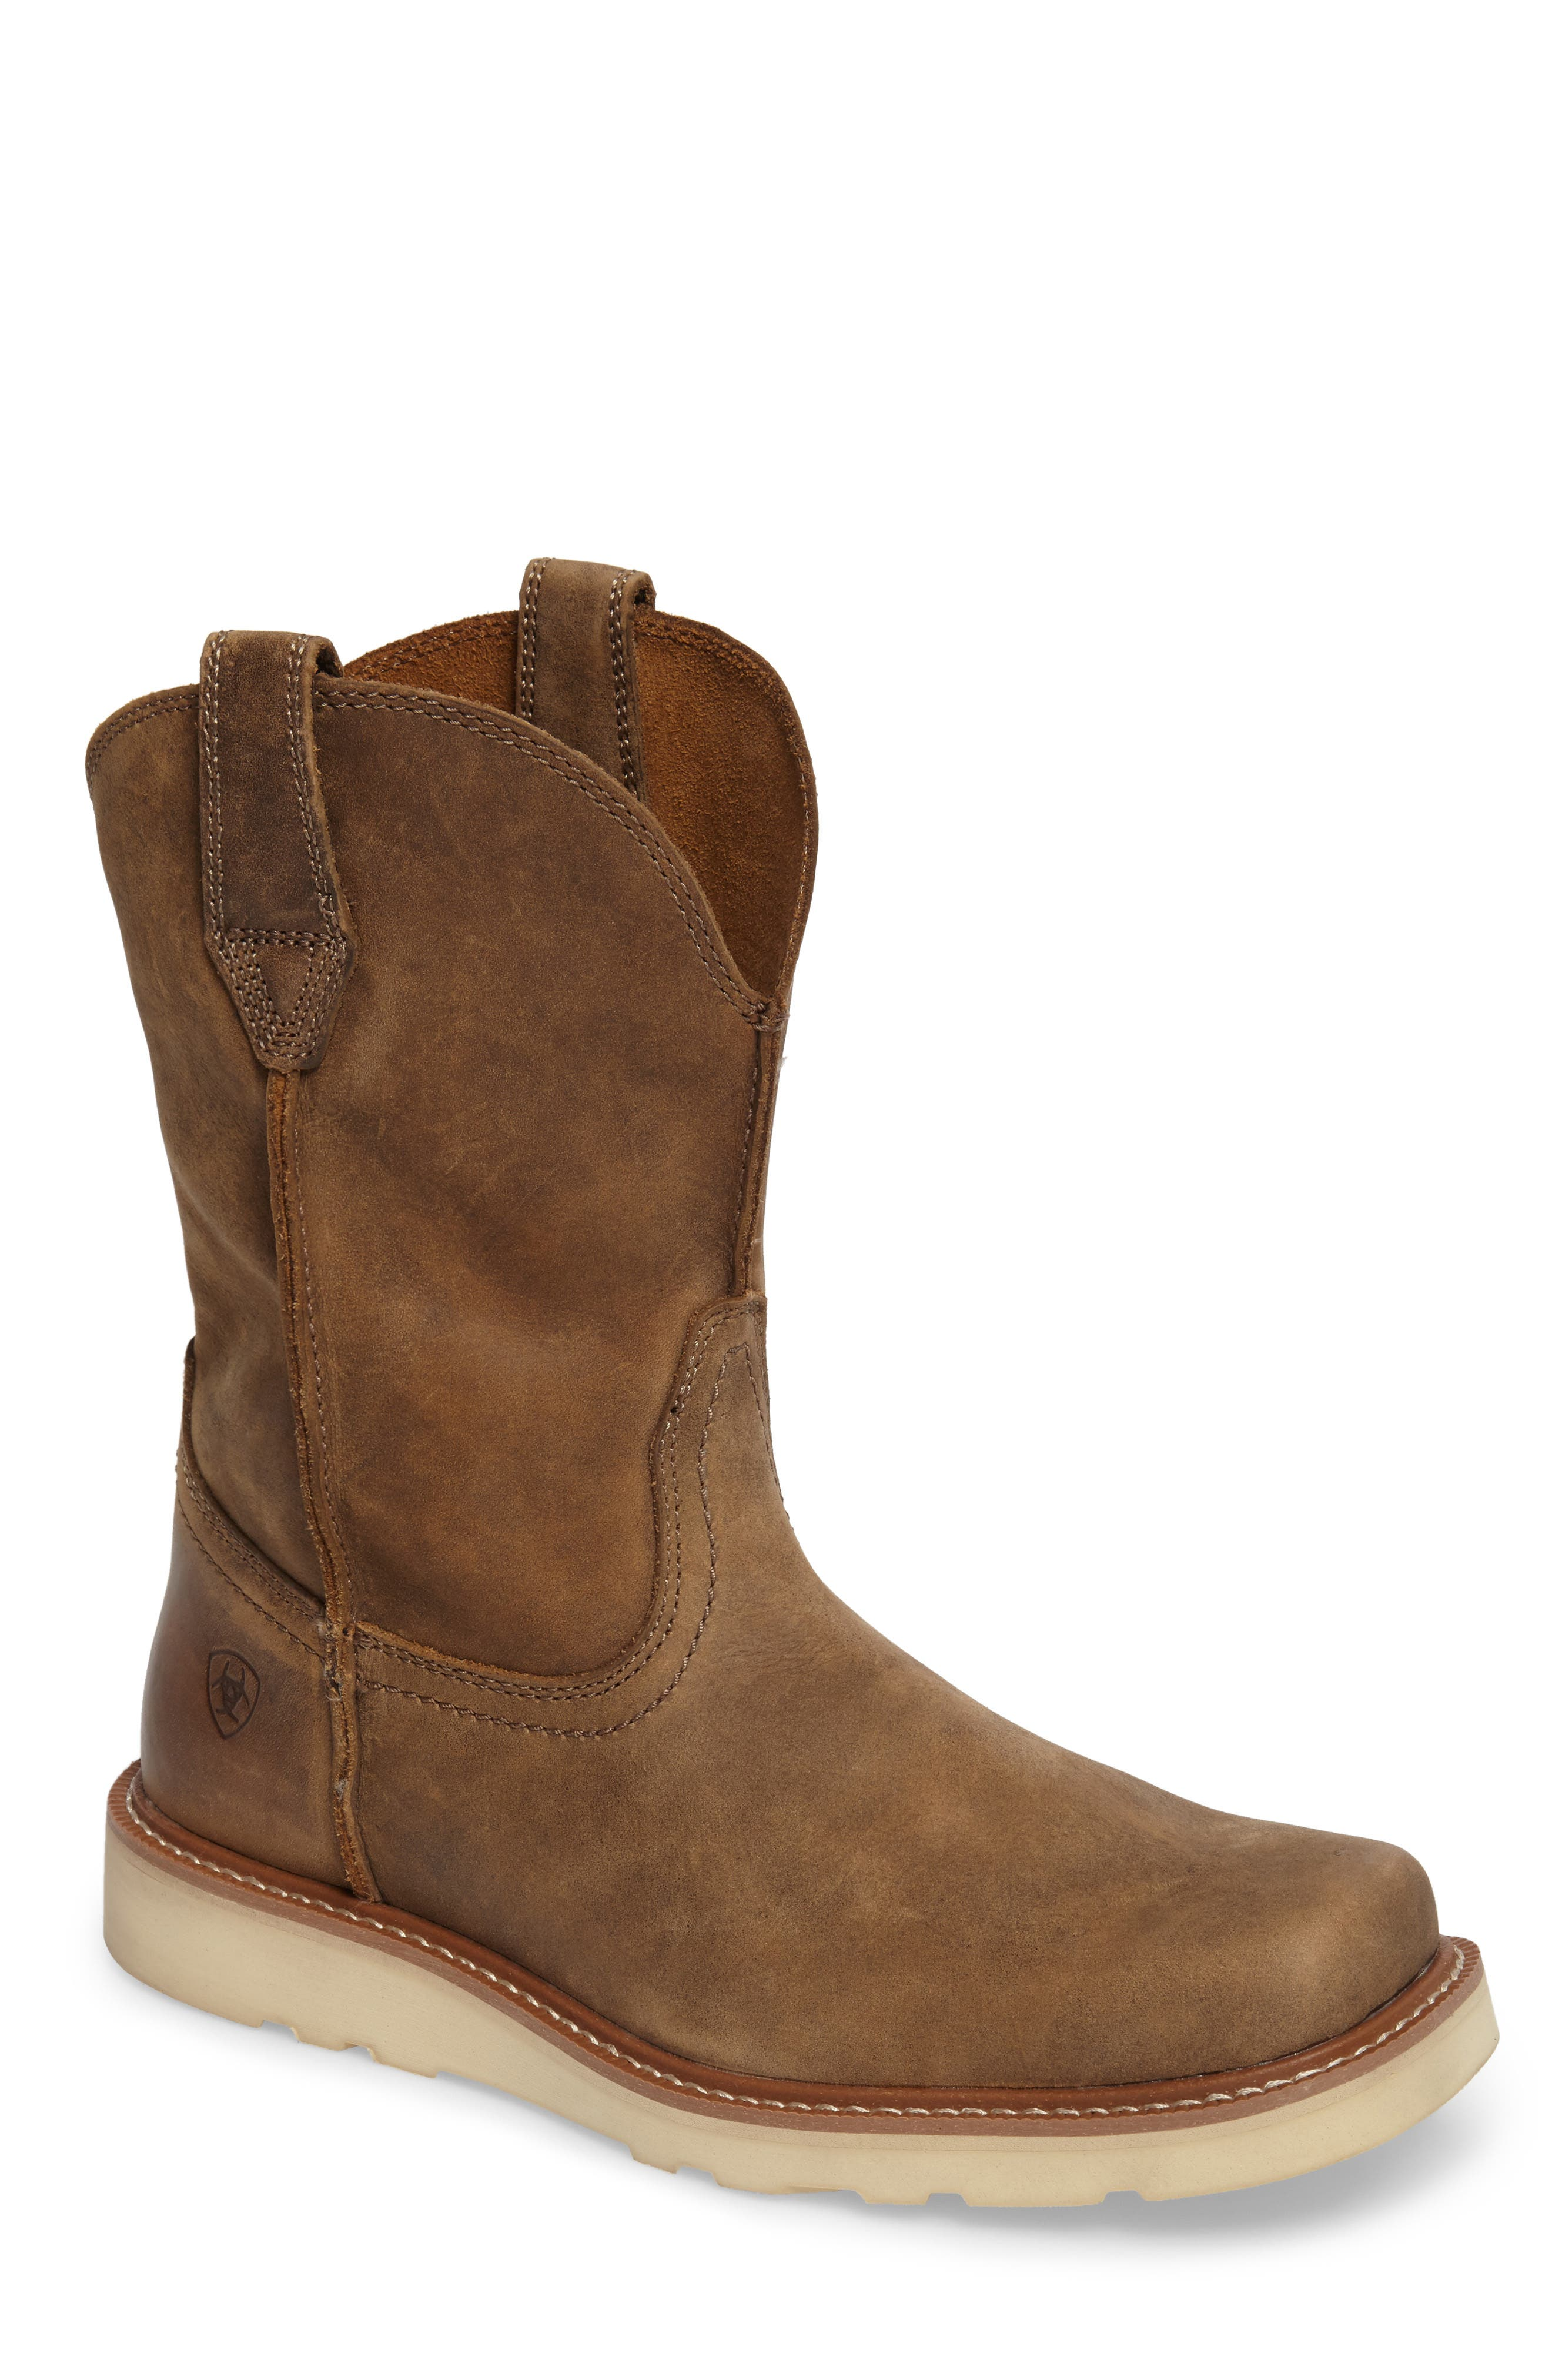 ARIAT Rambler Tall Boot, Main, color, BROWN BOMBER LEATHER